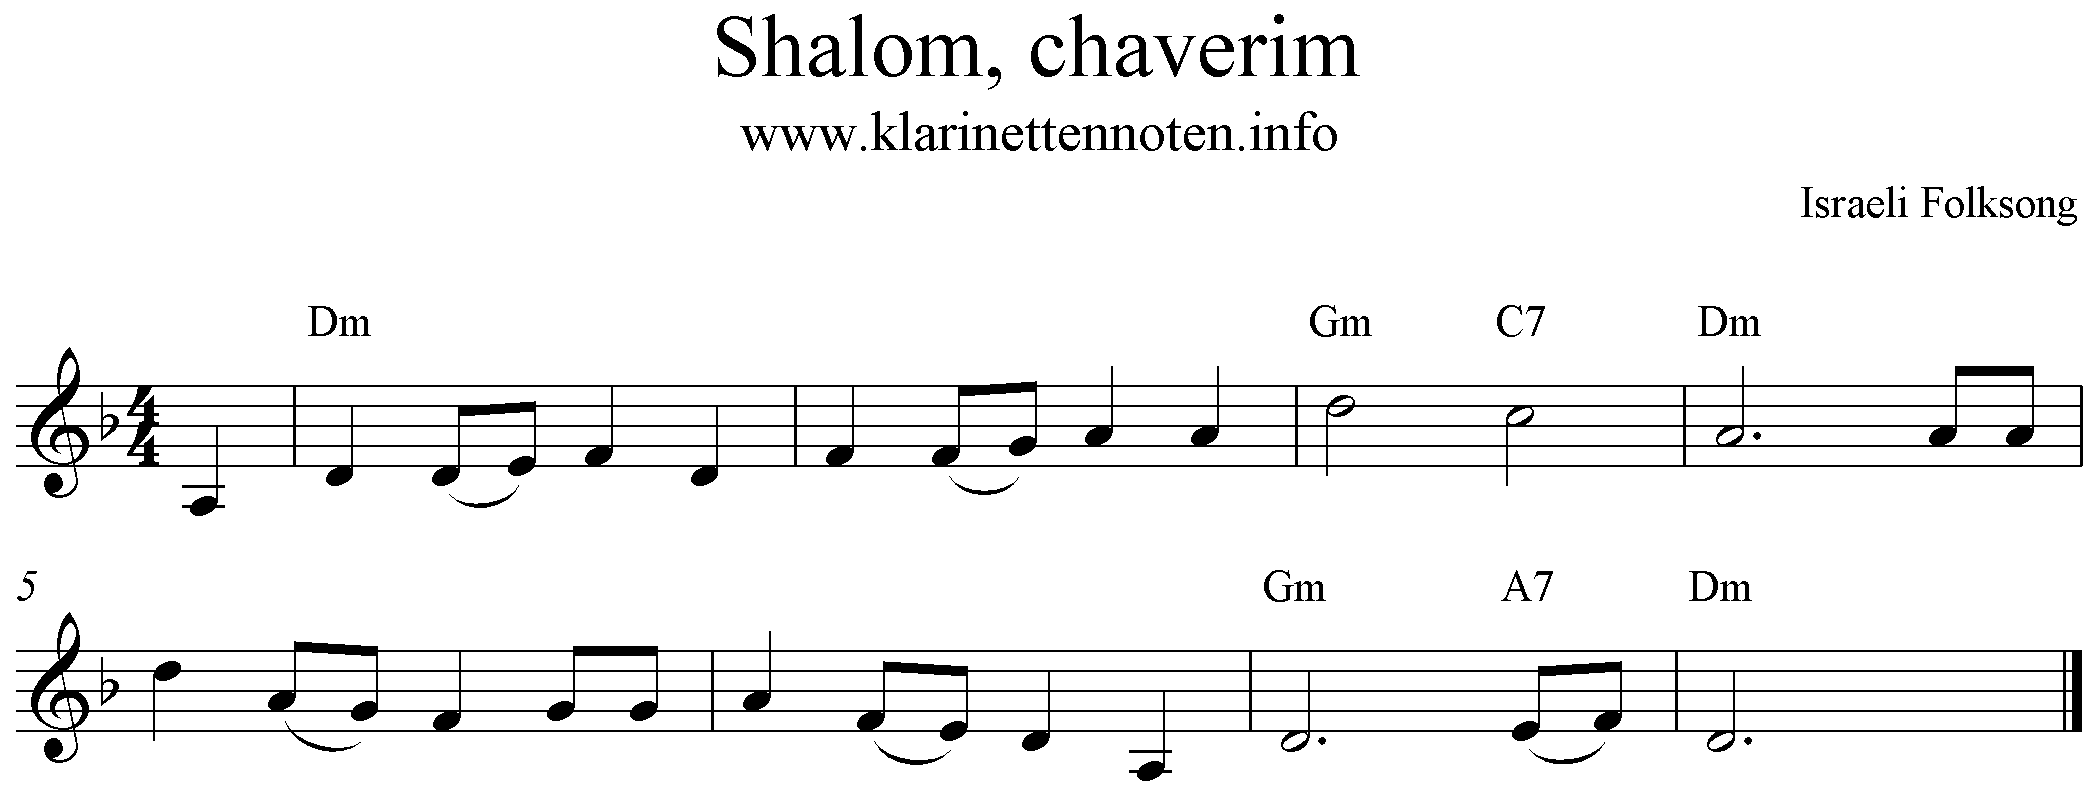 Noten, freesheetmusic, Shalom chaverim, d-minor, d-moll